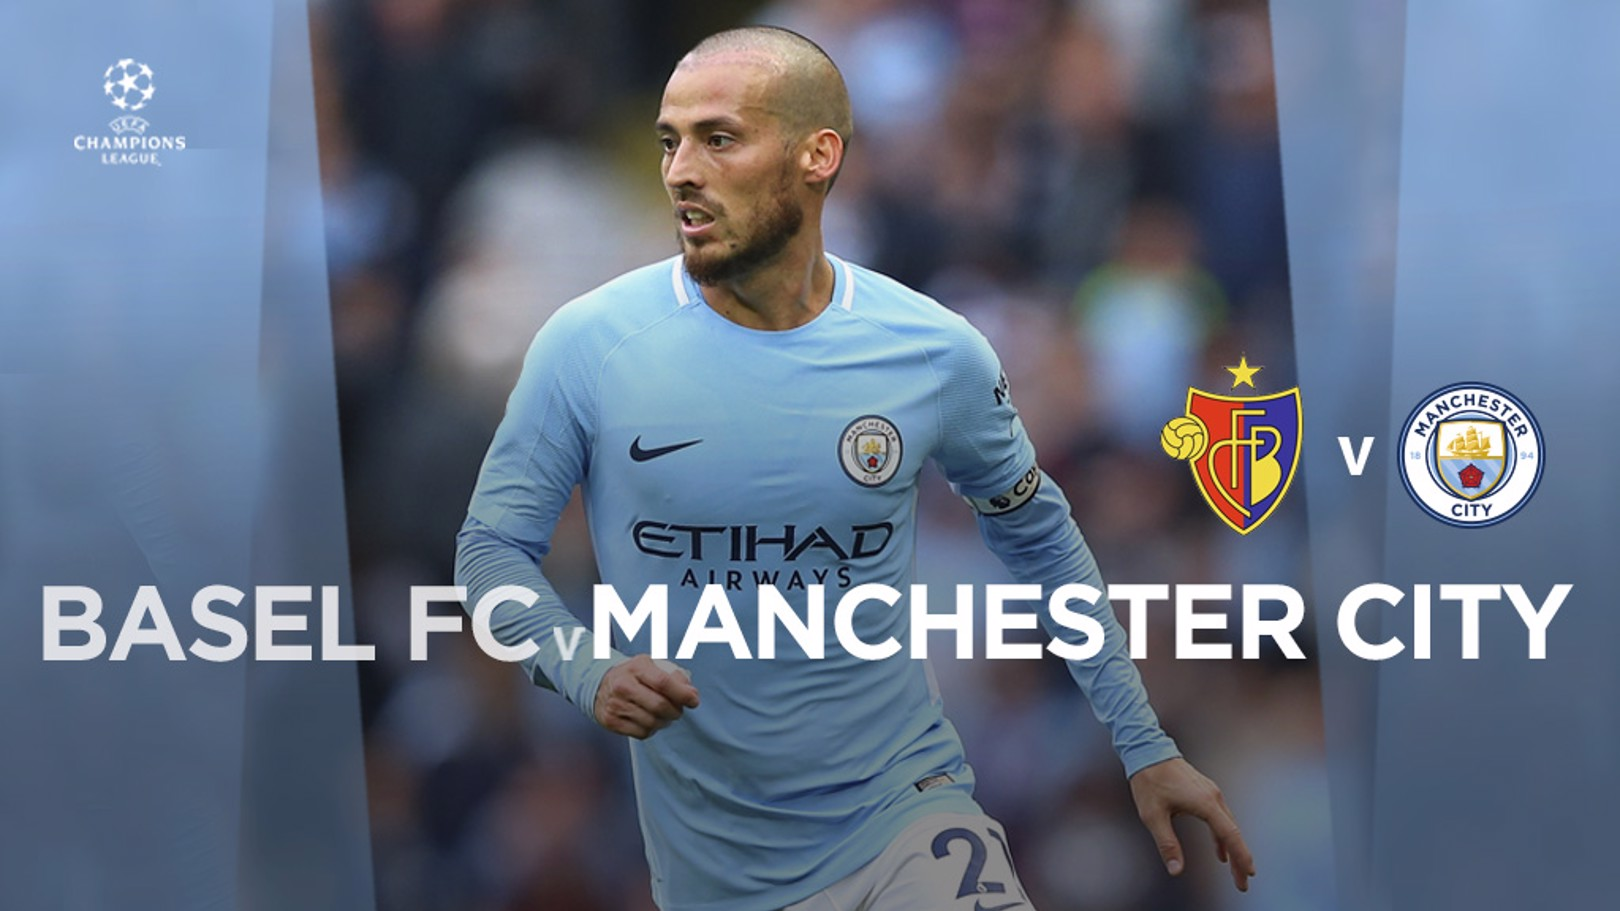 DAVID SILVA. Regreso a la convocatoria.